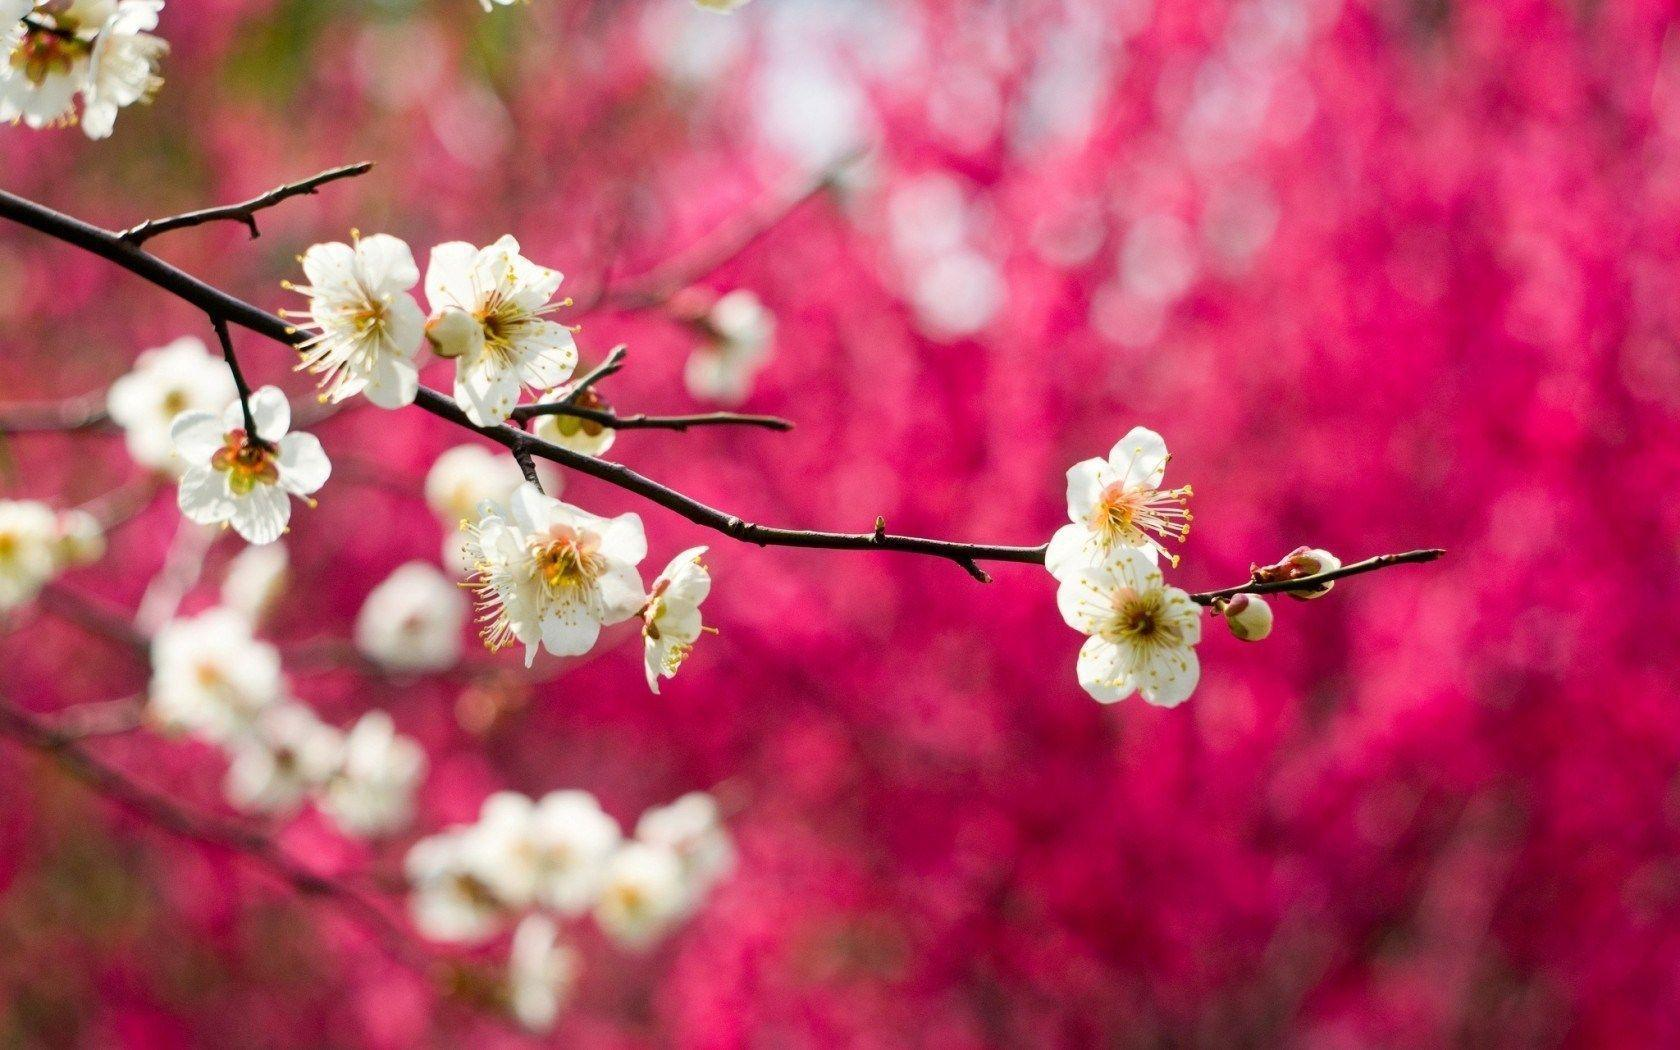 Spring Nature Flowers Hd Desktop 9 HD Wallpapers